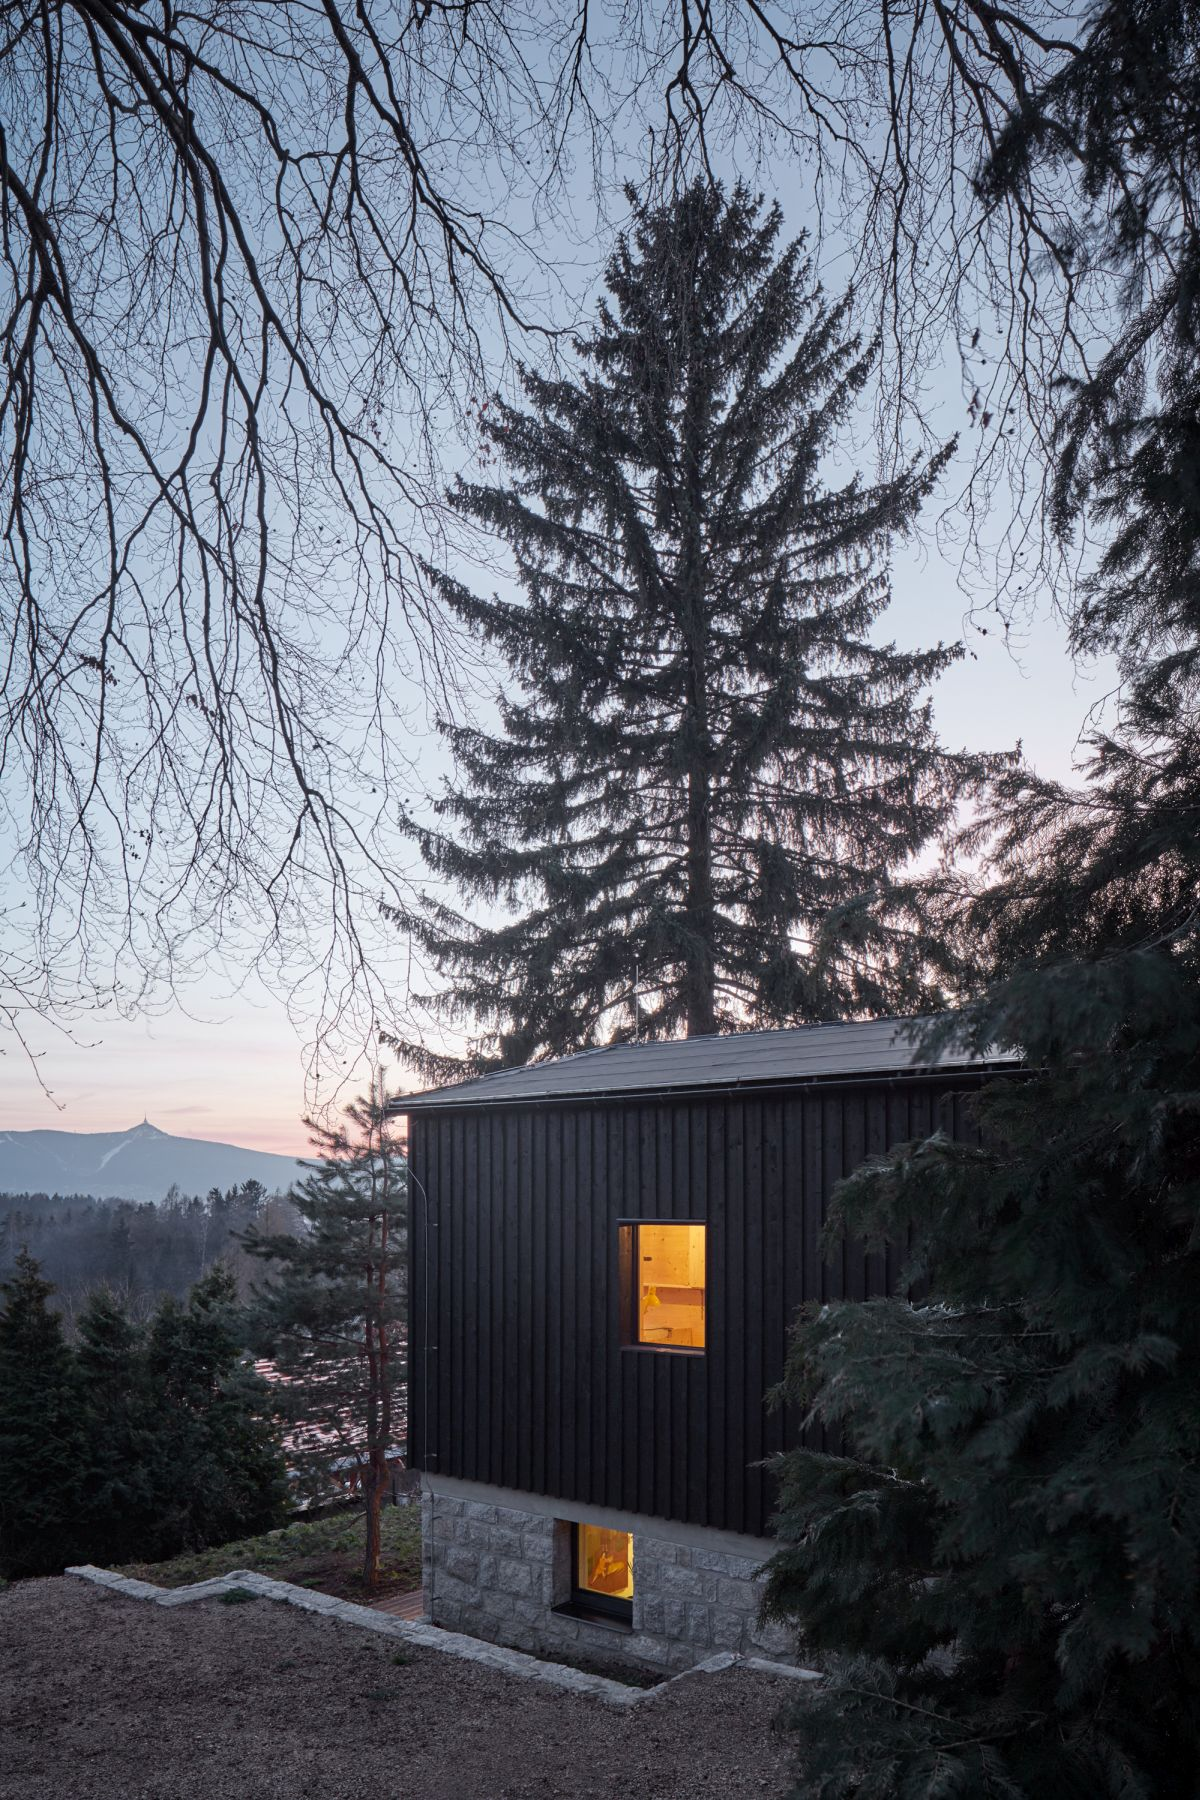 The house overlooks a beautiful valley and was designed to take advantage of the view